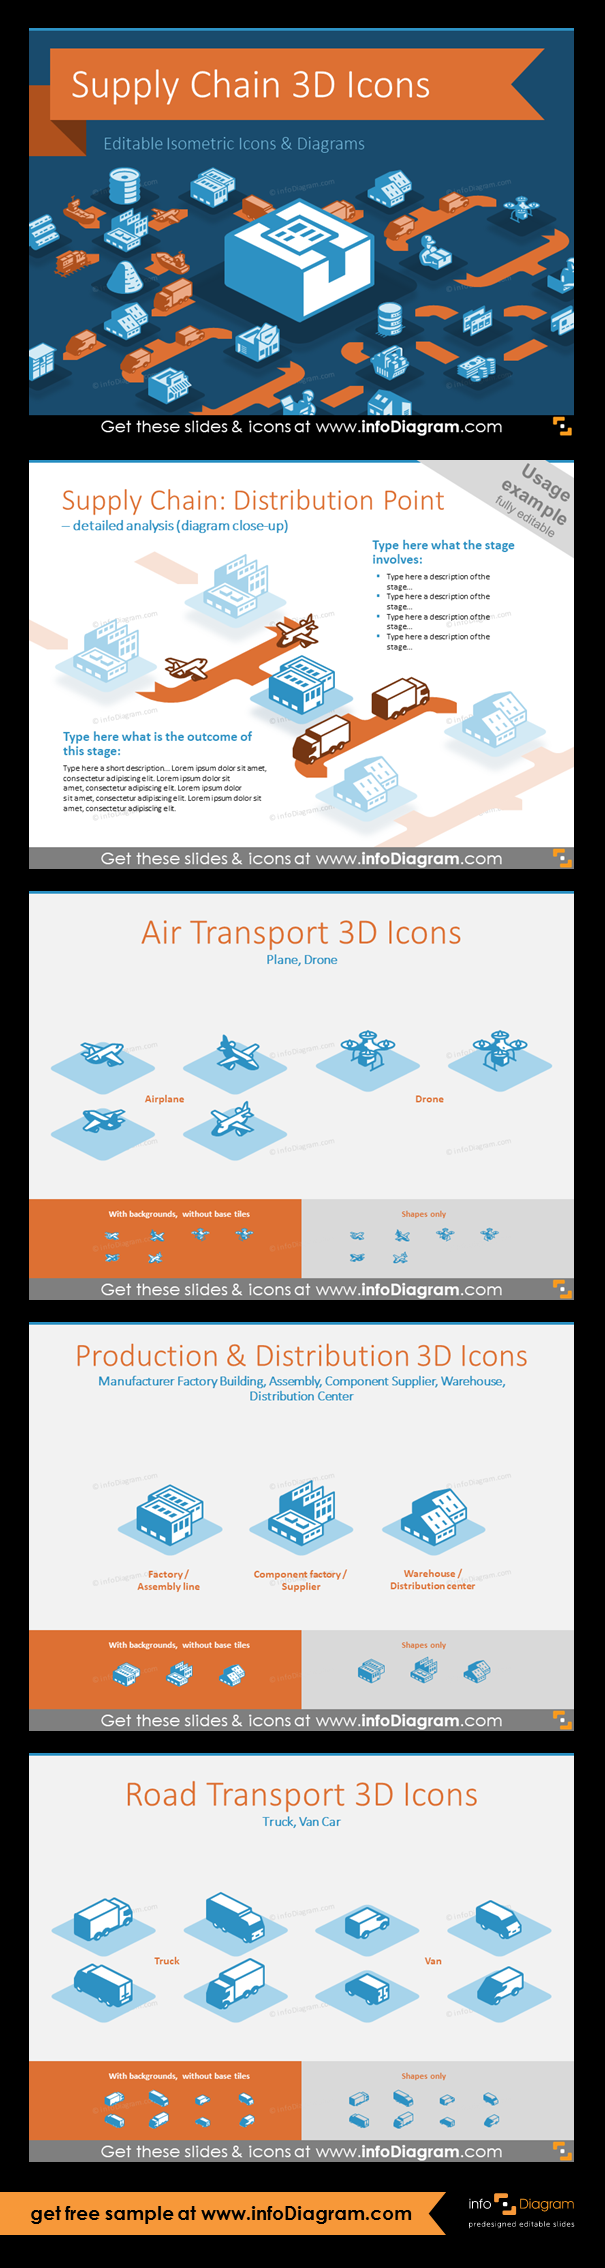 3D Supply Chain Vector Icons (PPT isometric graphics